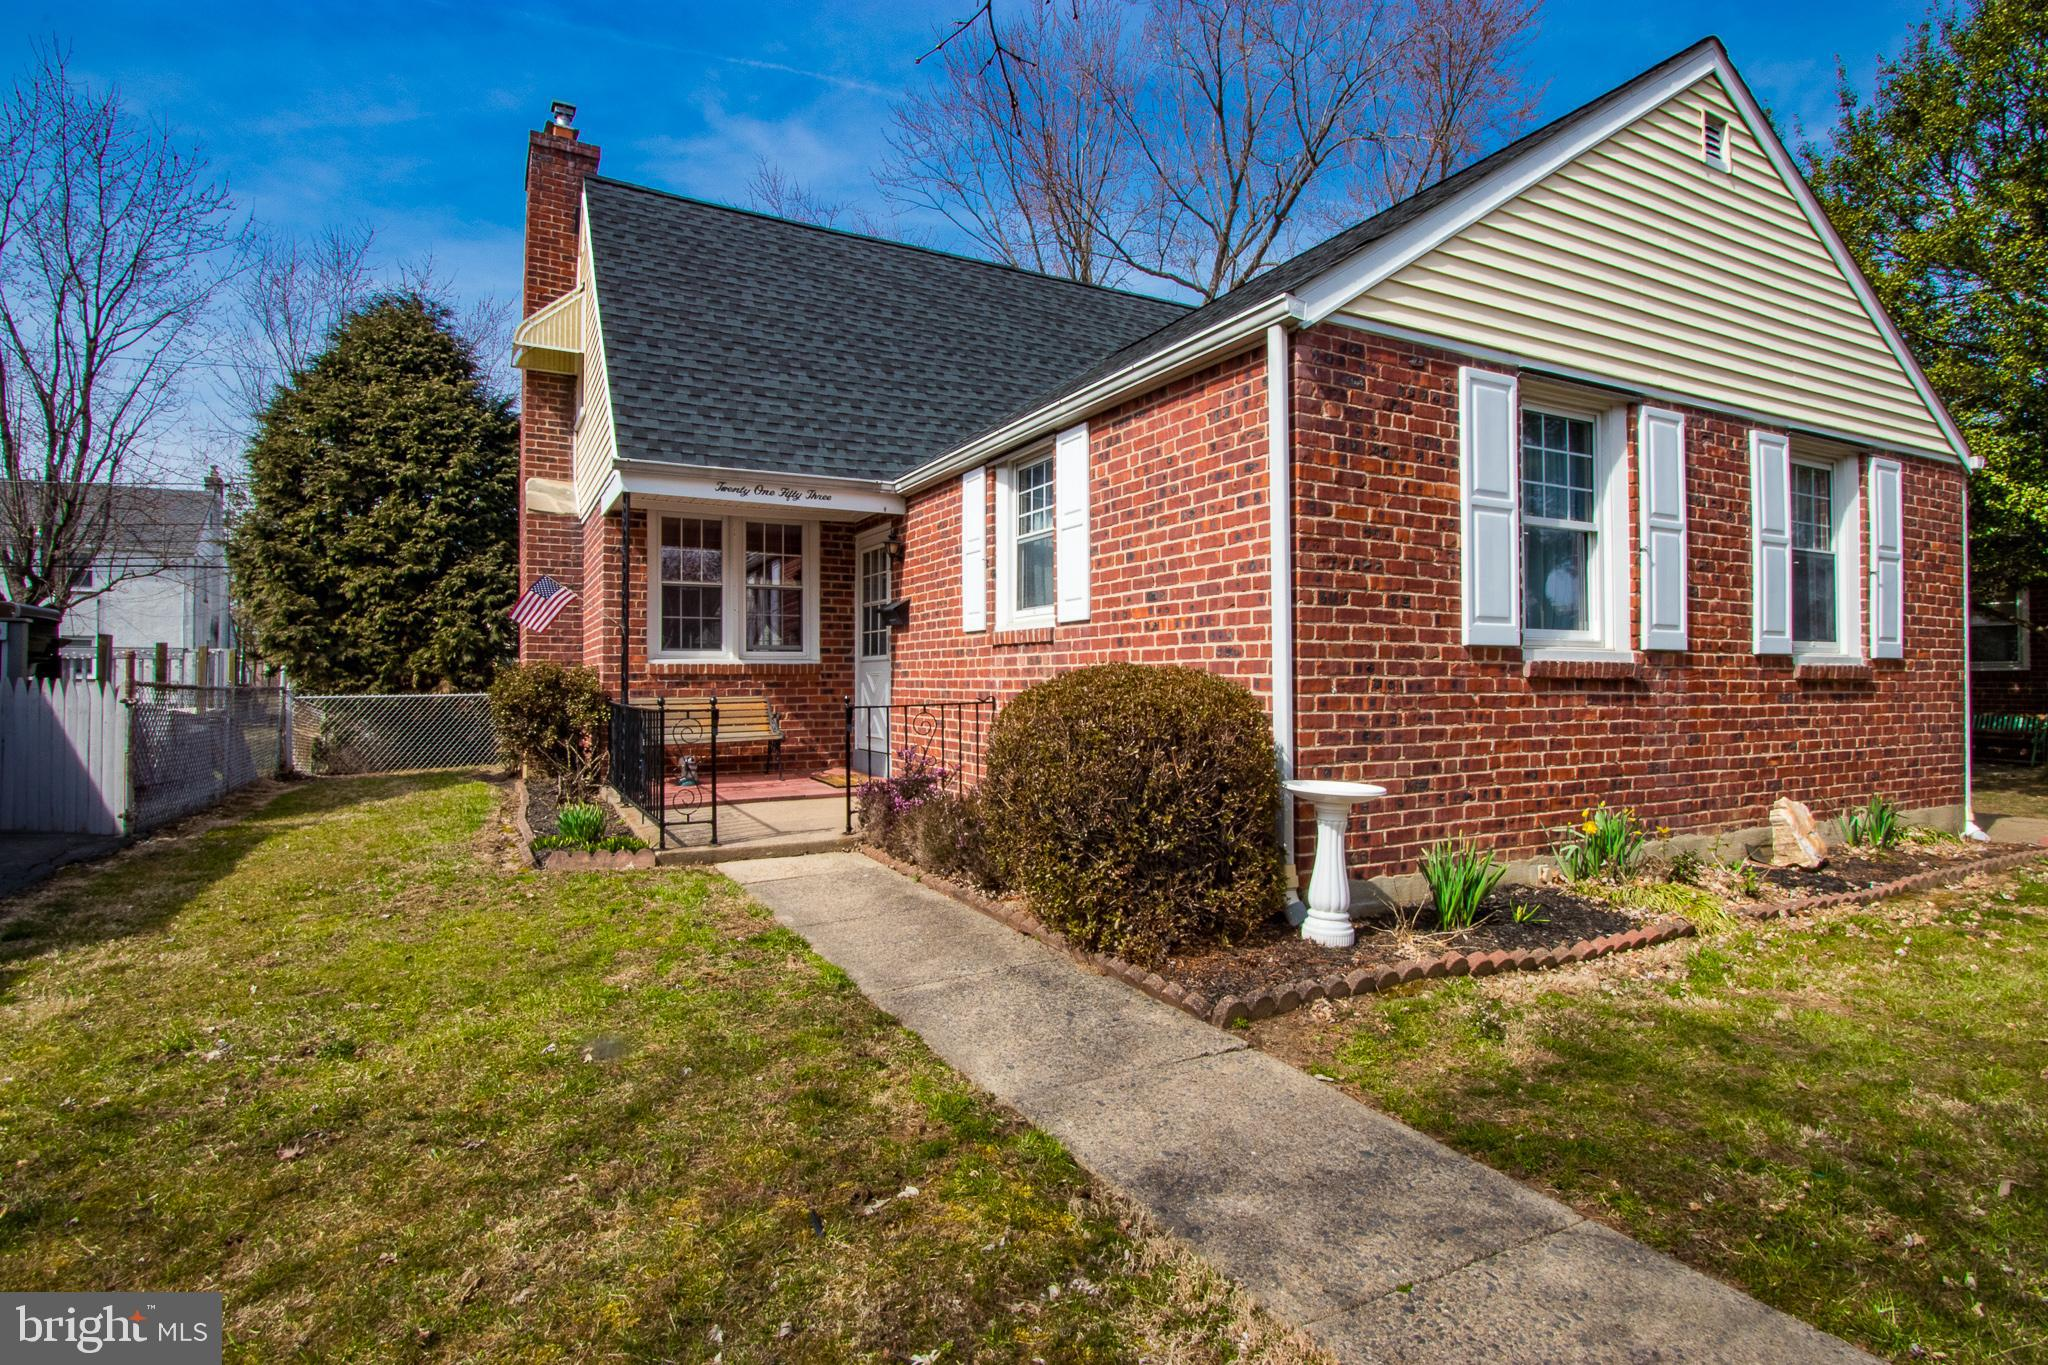 2153 6TH AVENUE, MORTON, PA 19070